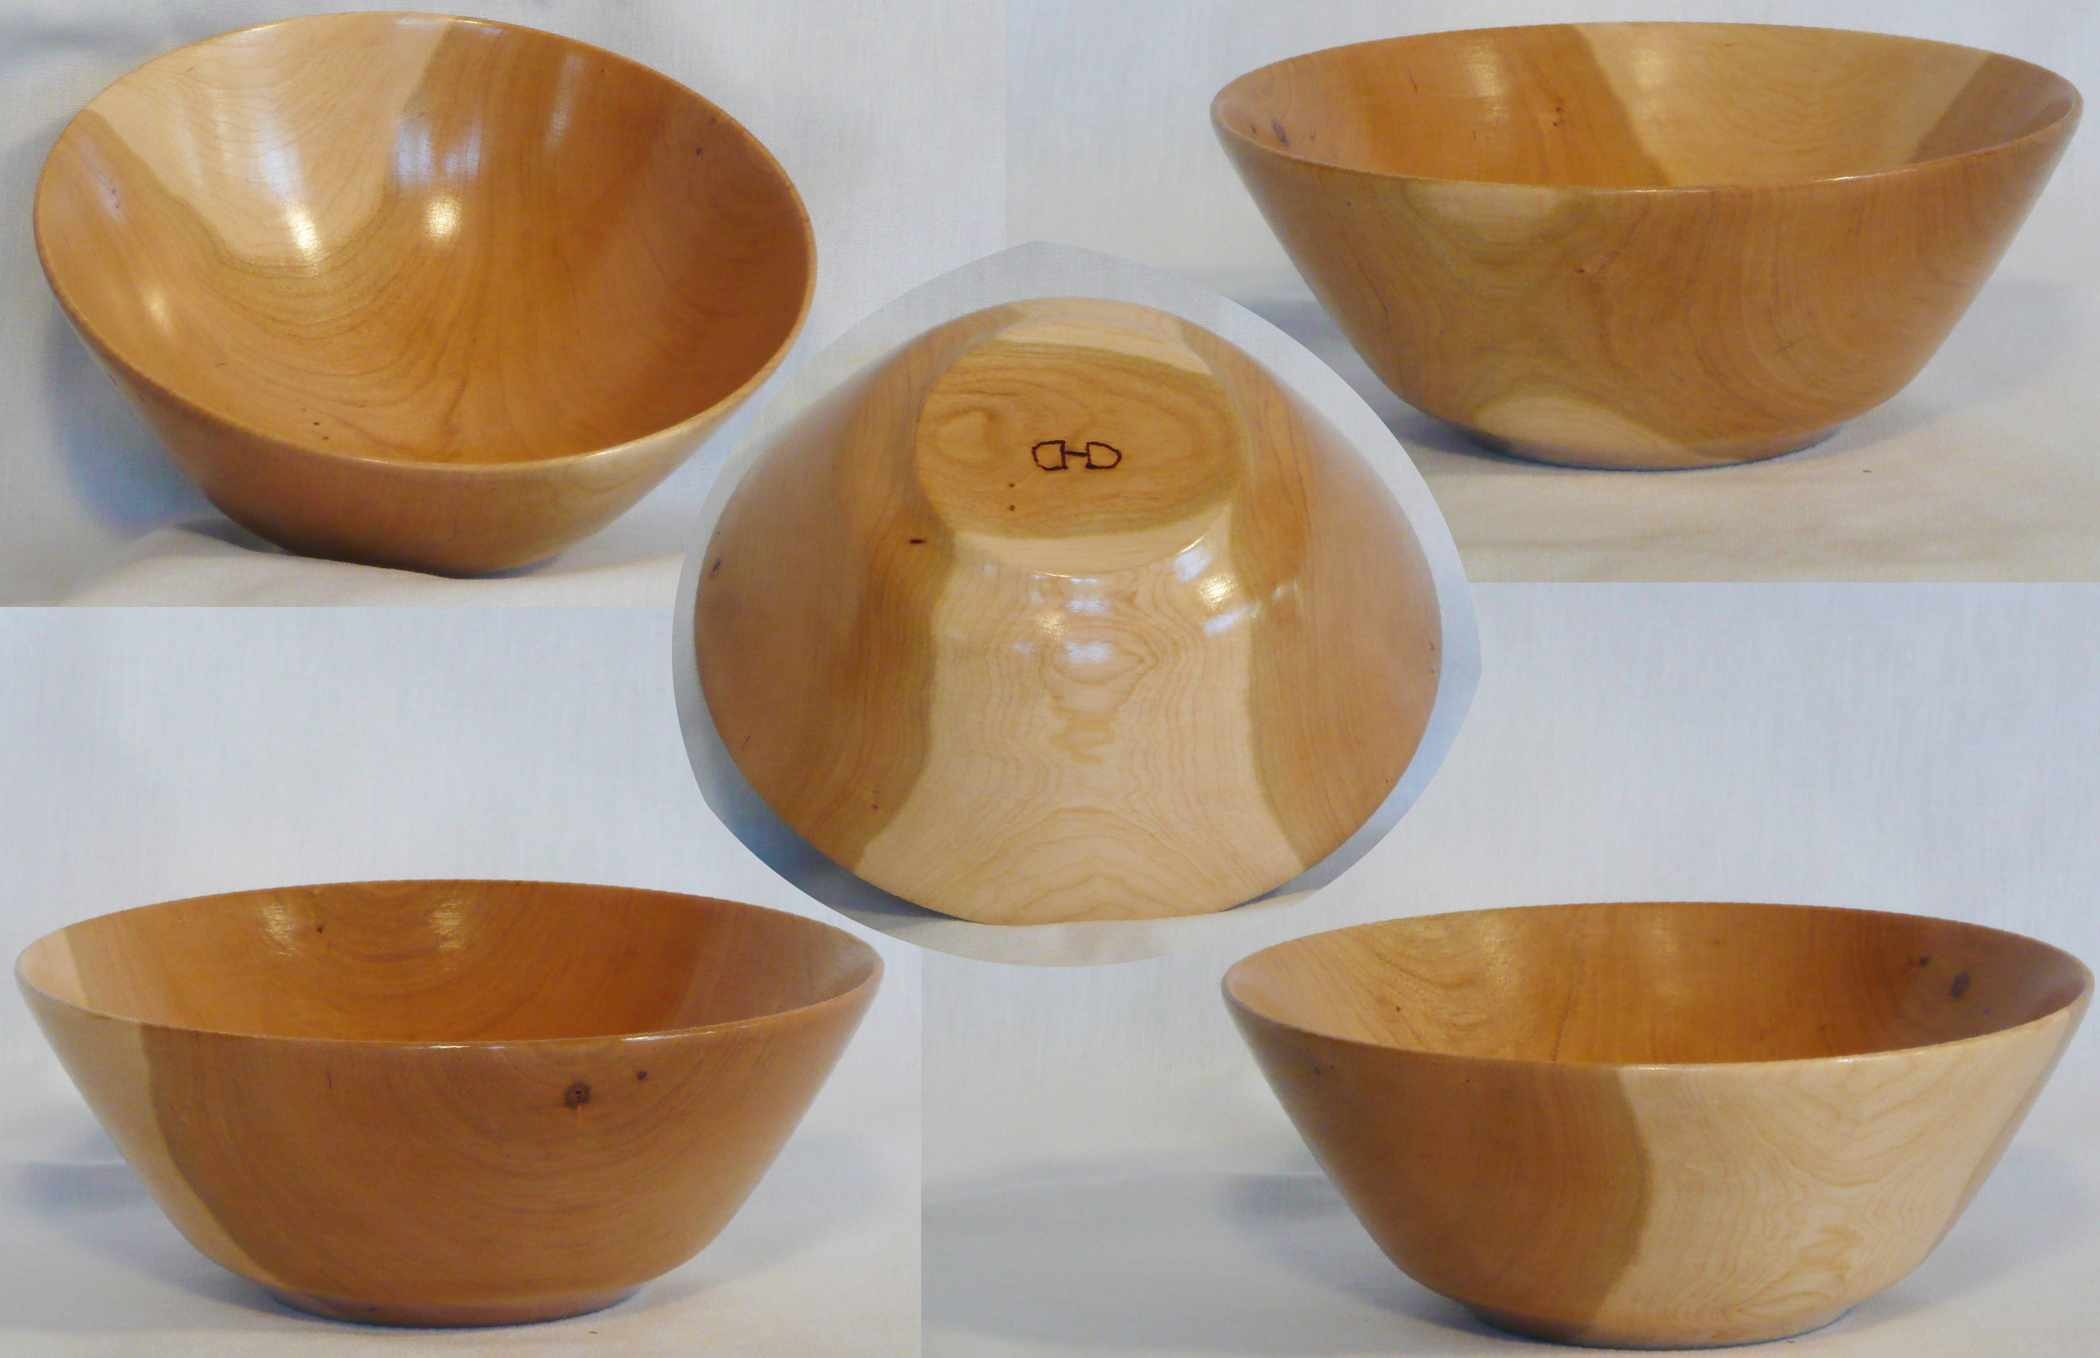 Hand turned Cherry bowl accented by sapwood on two sides by Cynthia D. Haney.